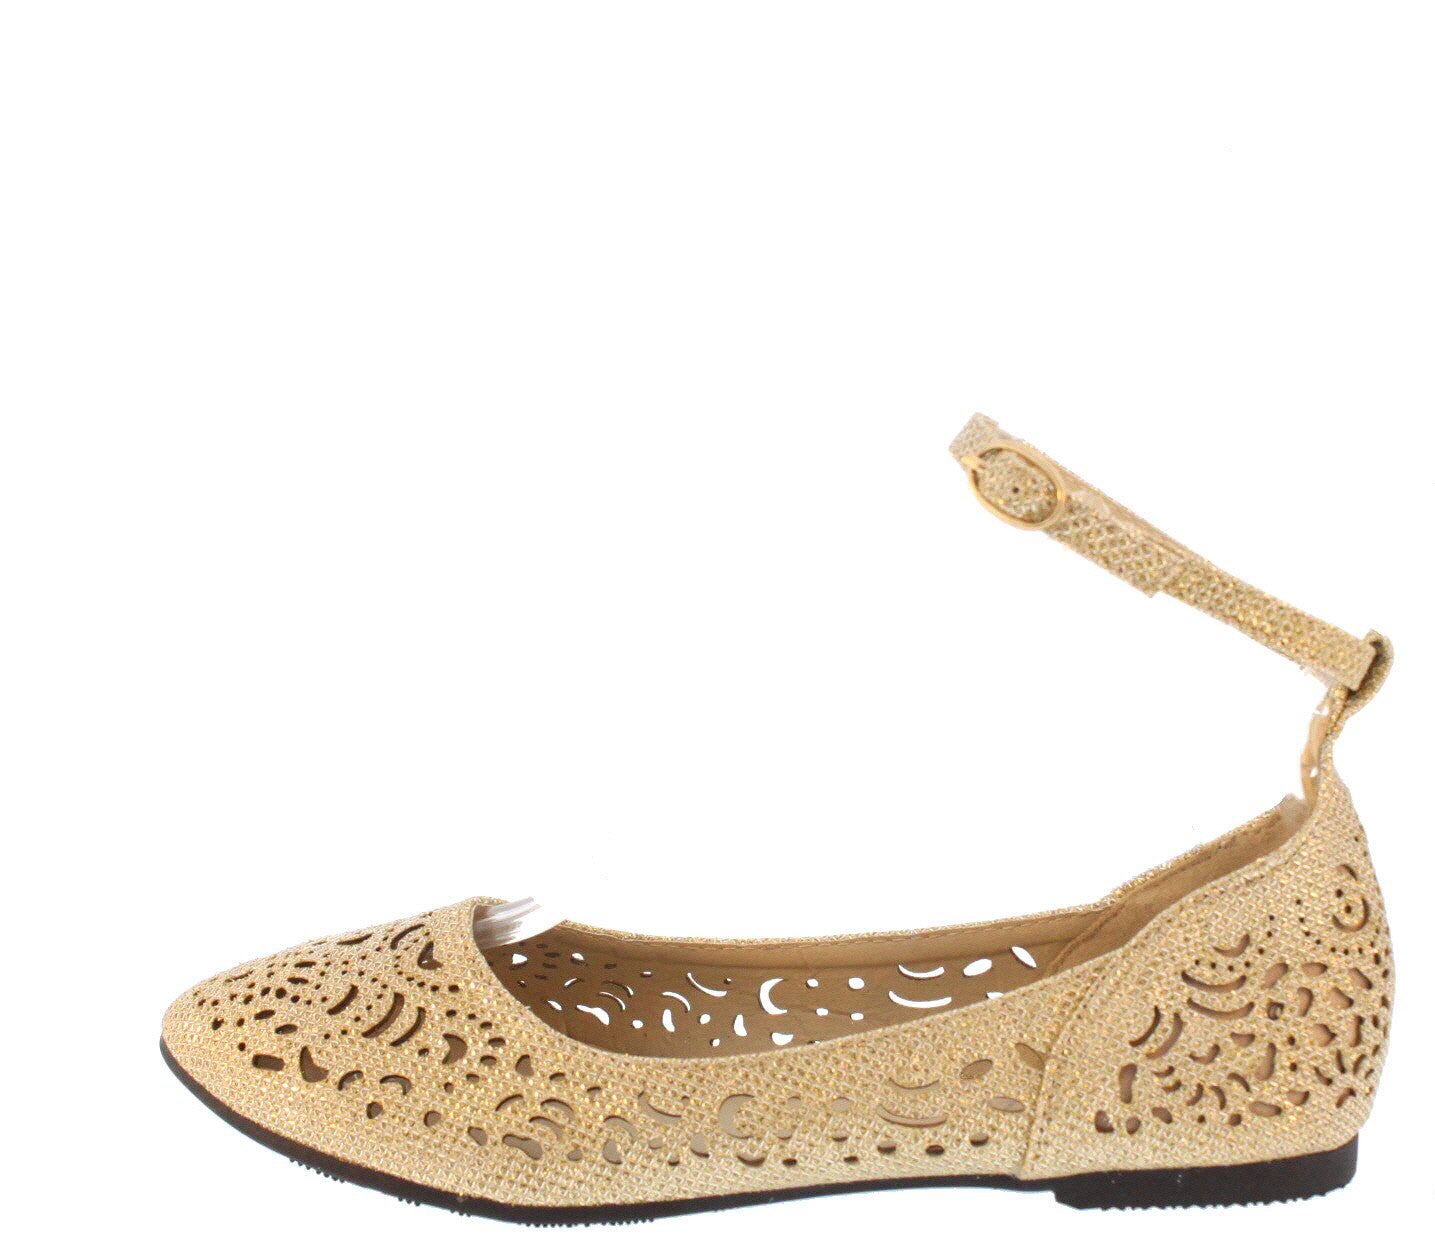 FT001 GOLD GLITTER CUT OUT ANKLE STRAP FLATS ONLY $10.88